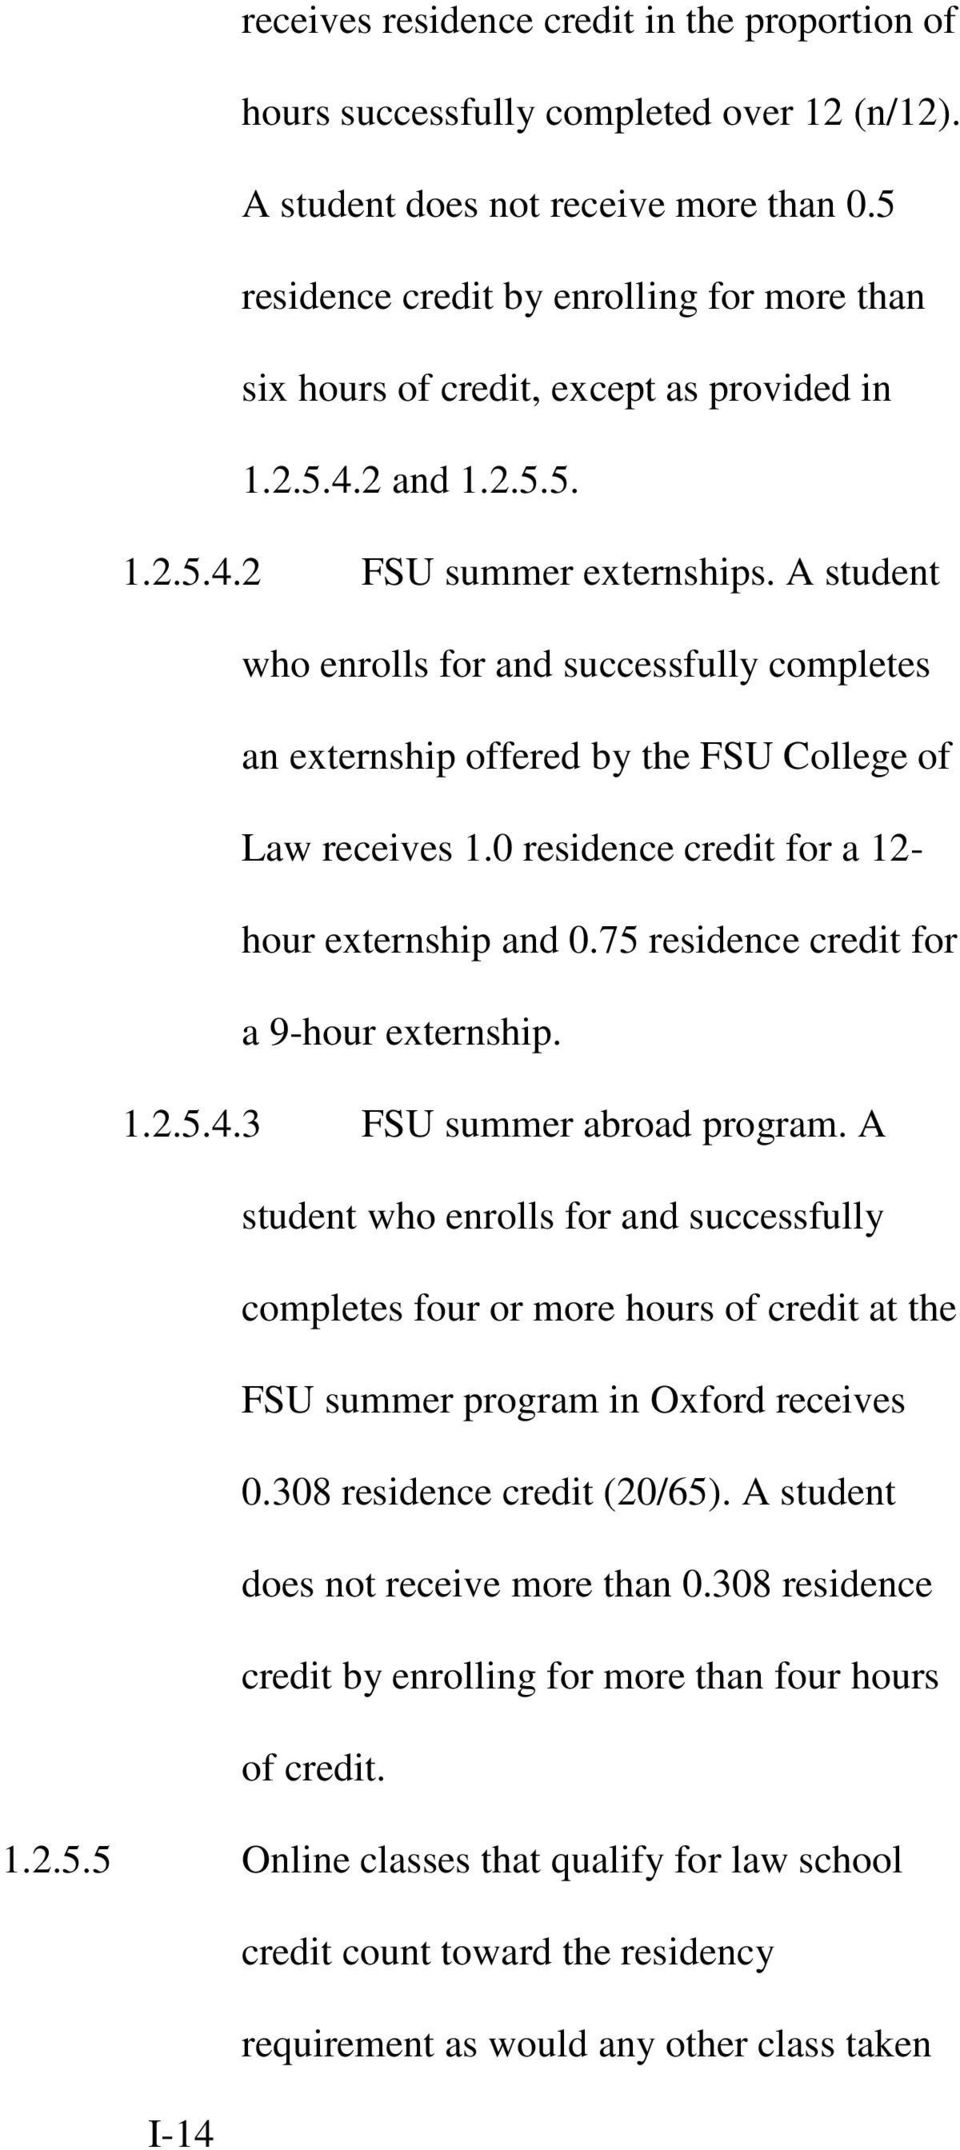 A student who enrolls for and successfully completes an externship offered by the FSU College of Law receives 1.0 residence credit for a 12- hour externship and 0.